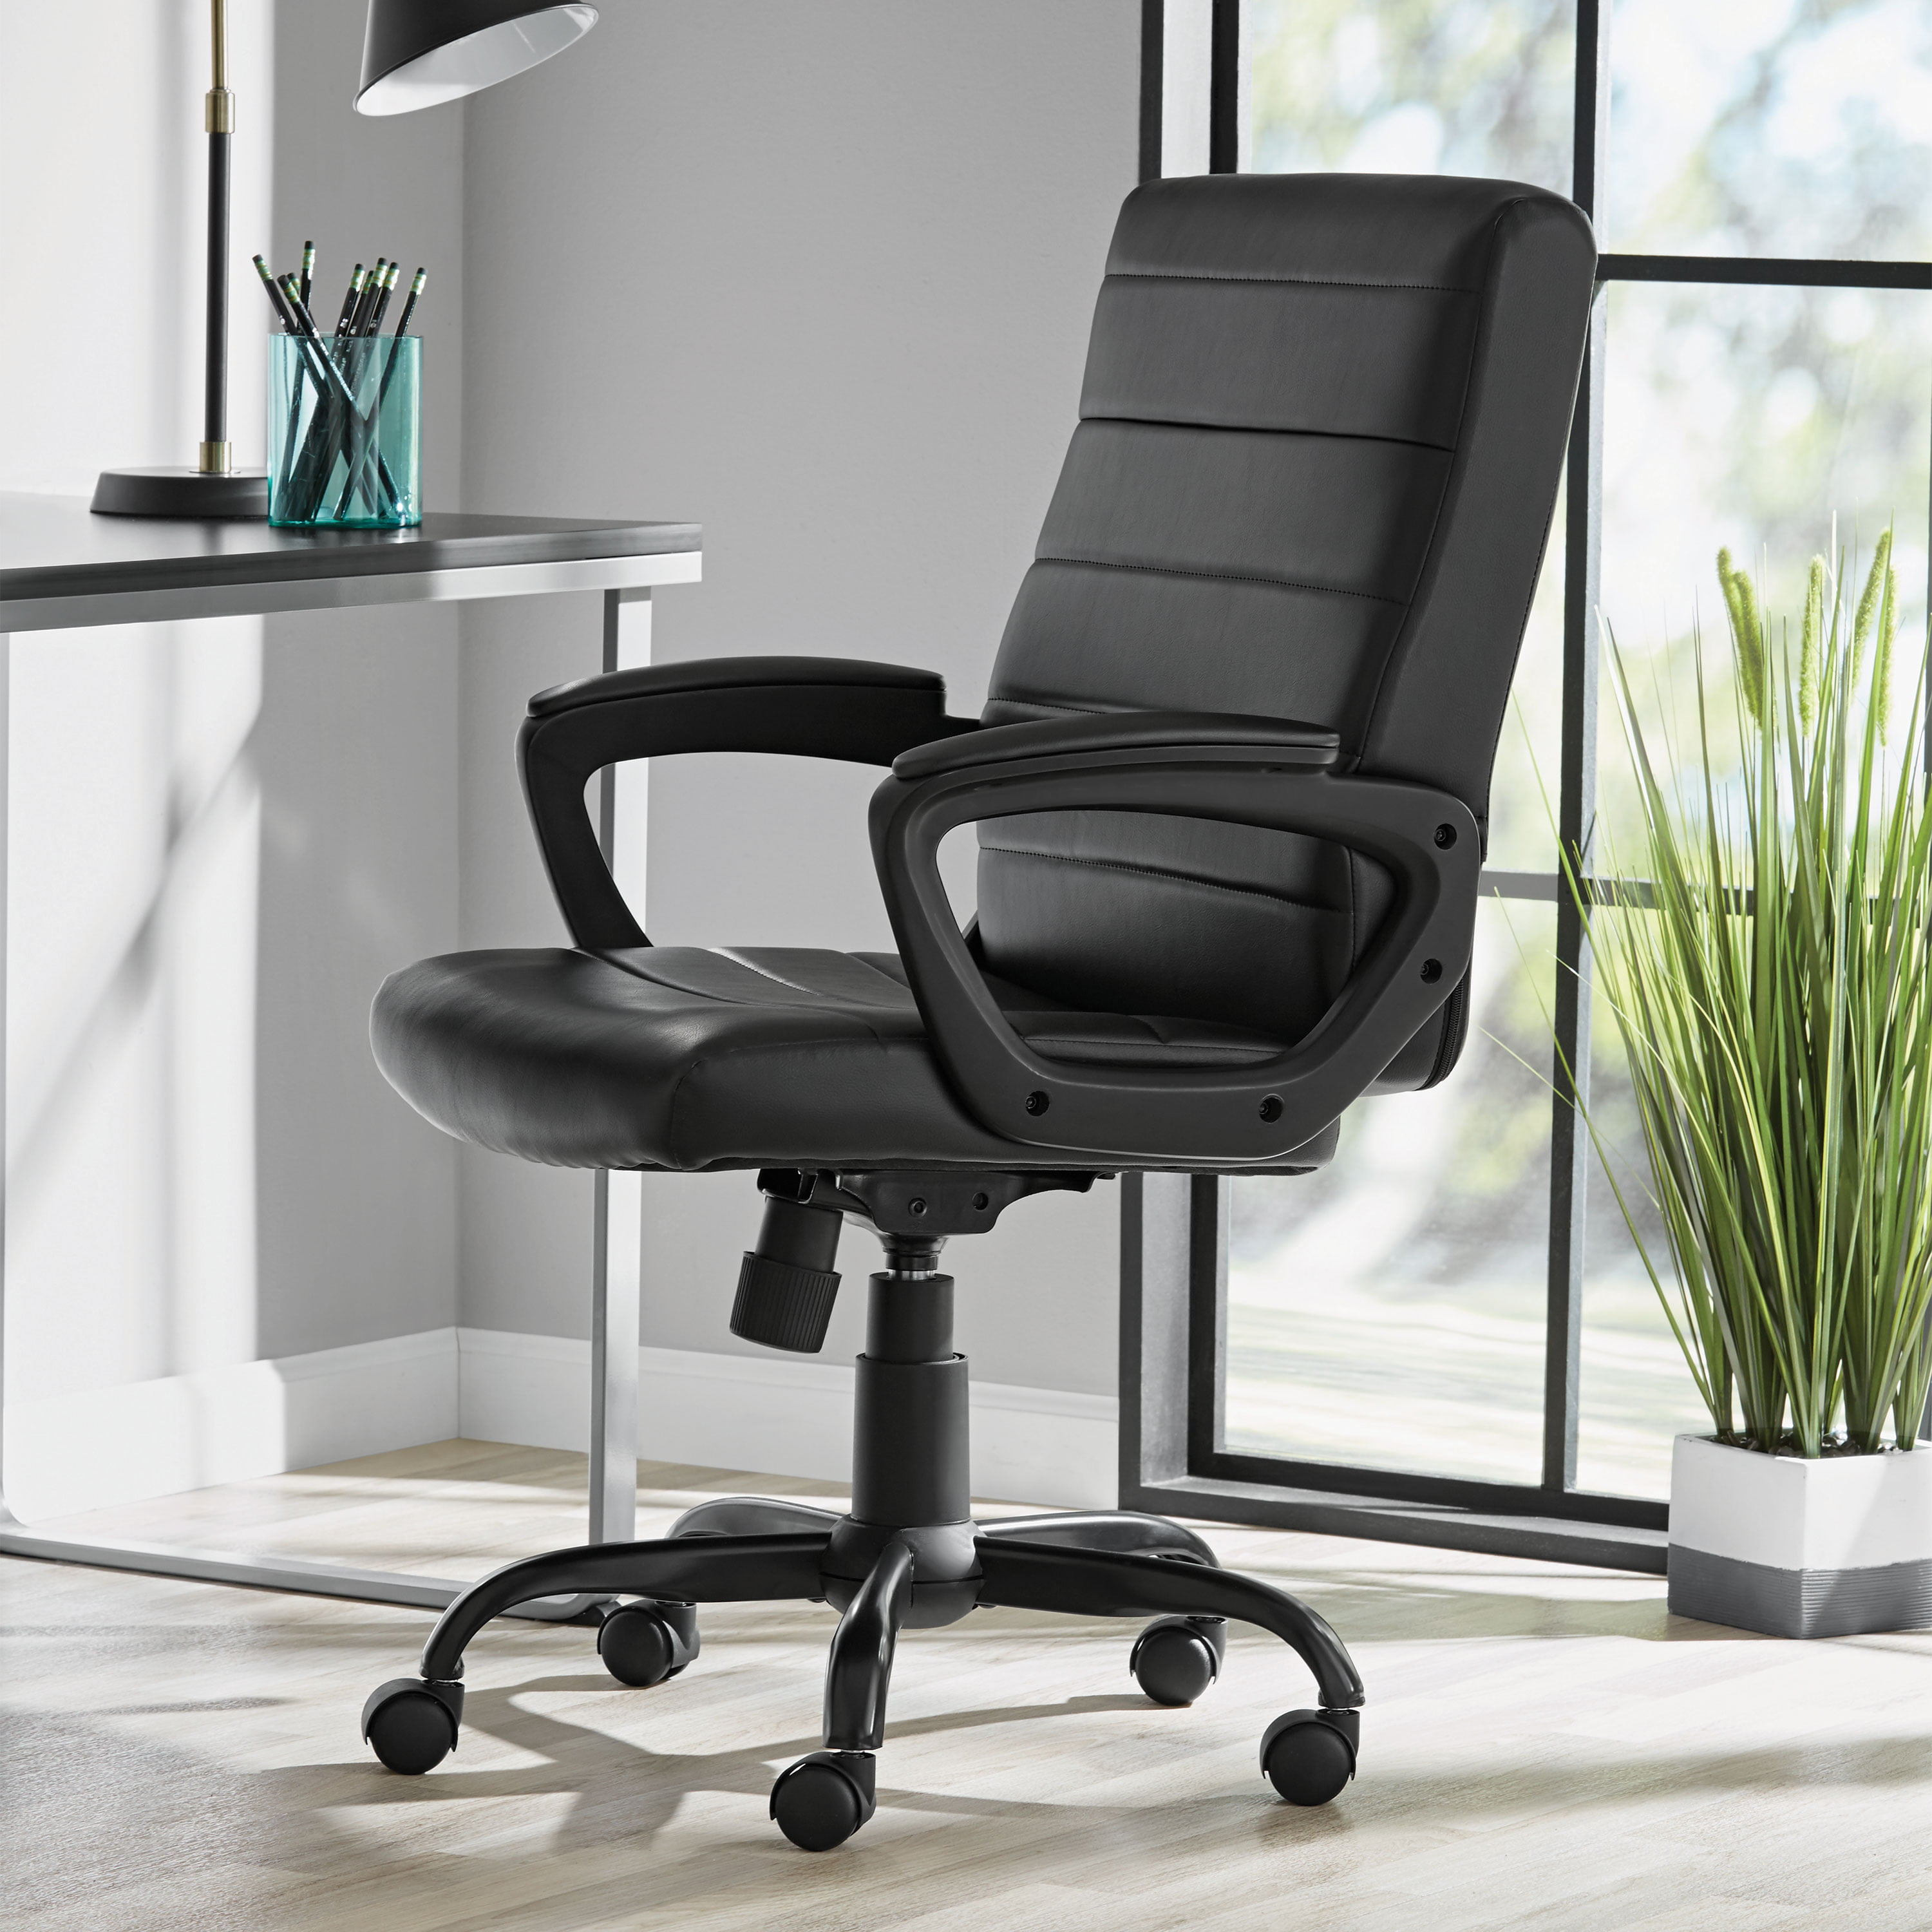 Mainstays Bonded Leather Mid Back Manager S Office Chair Black Walmart Com Walmart Com